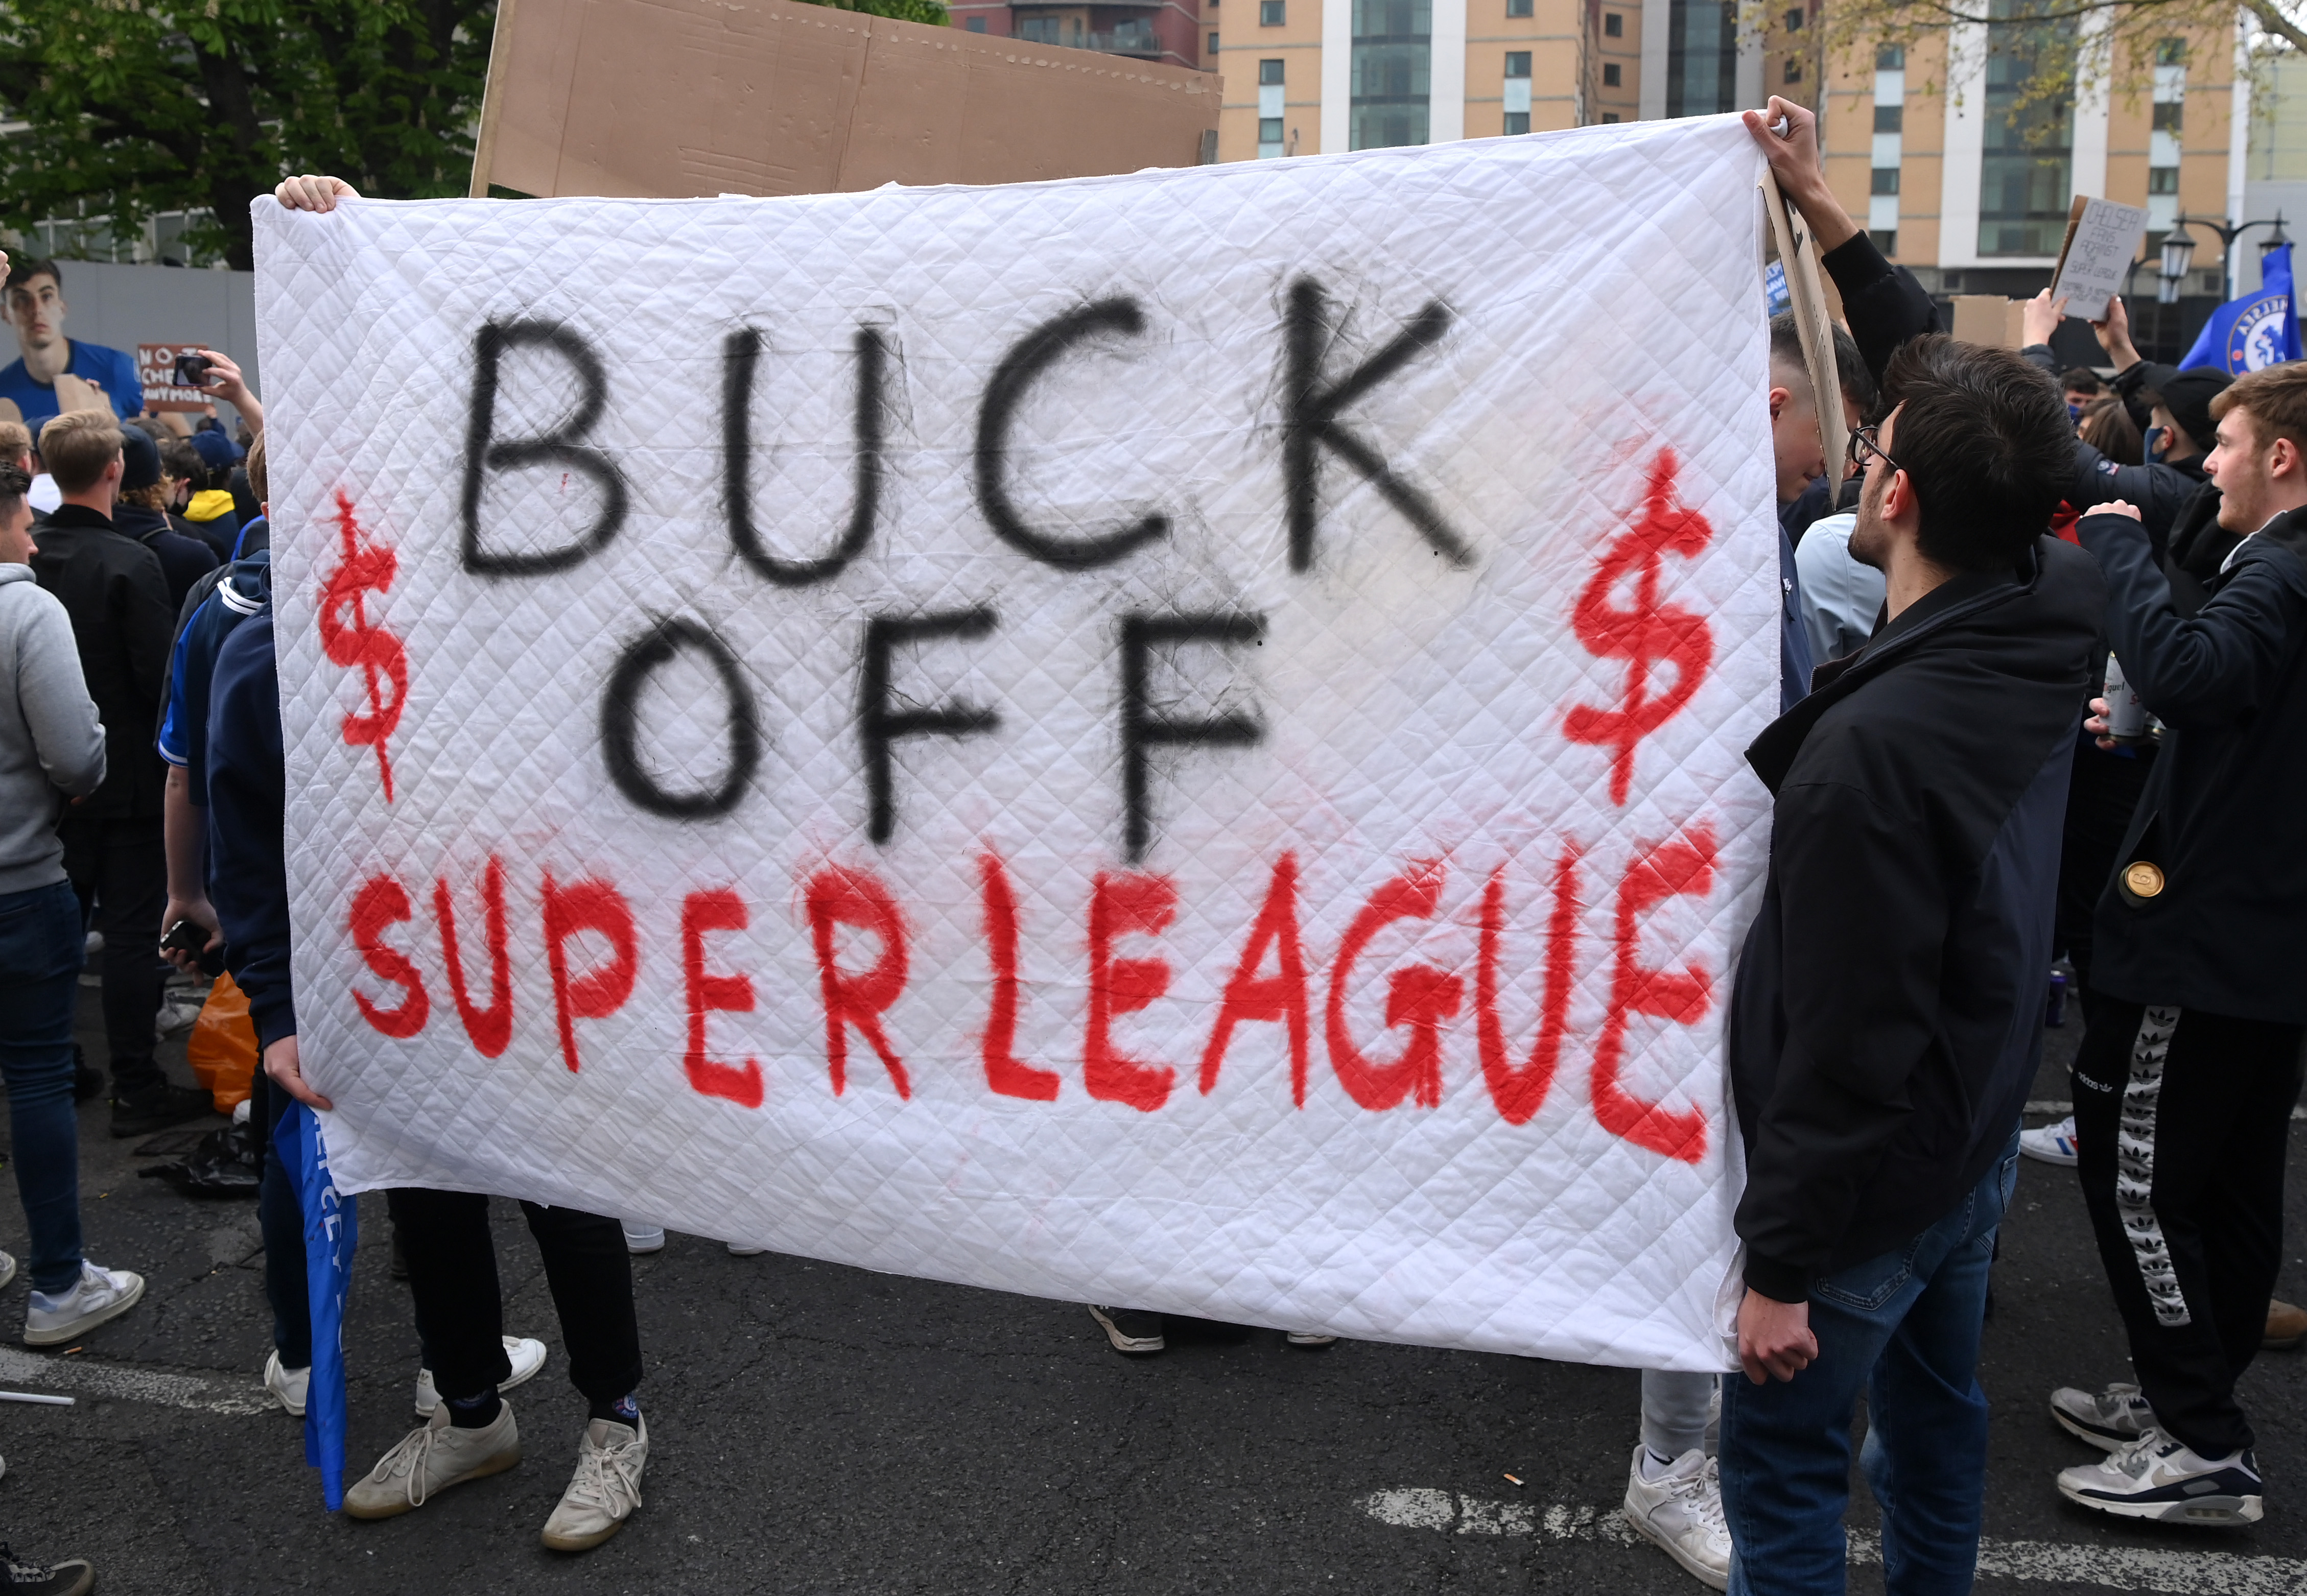 Chelsea fans protest against the newly proposed European Super League prior to the Premier League match between Chelsea and Brighton at Stamford Bridge on April 20, 2021 in London, England